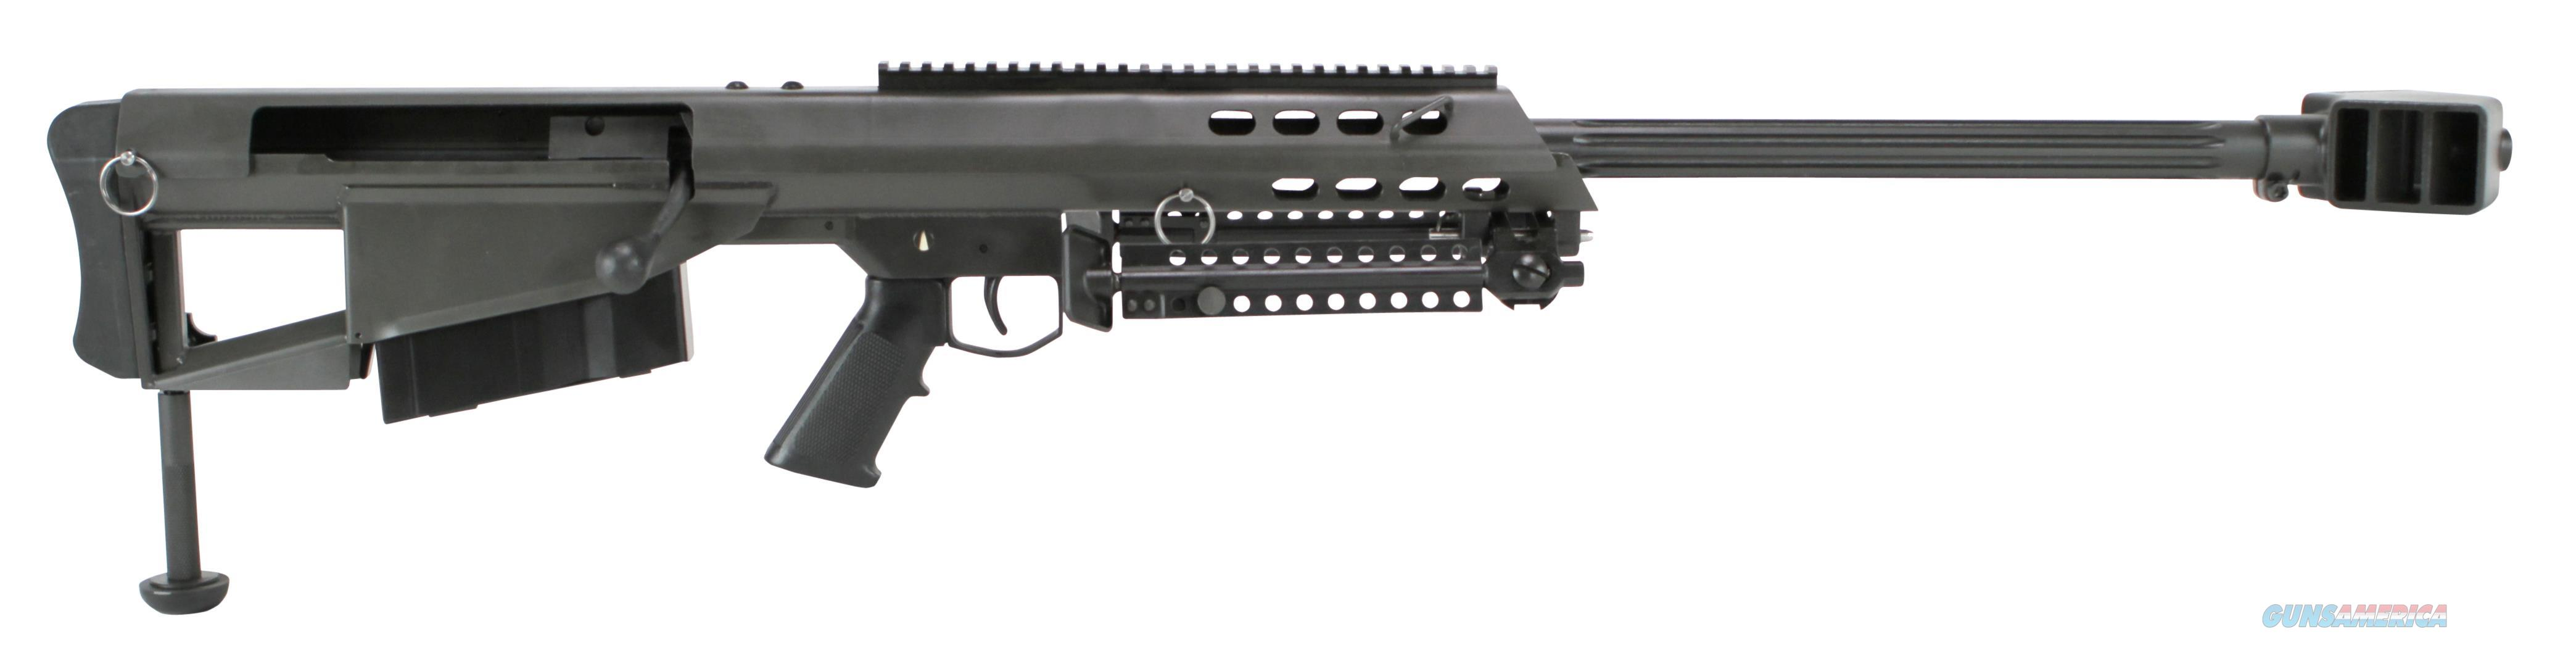 "Barrett 13312 M95 Rifle System Bolt 50 Browning Machine Gun (Bmg) 29"" 5+1 Fixed Metal Blk Stk Blk Parkerized 13312  Guns > Rifles > B Misc Rifles"